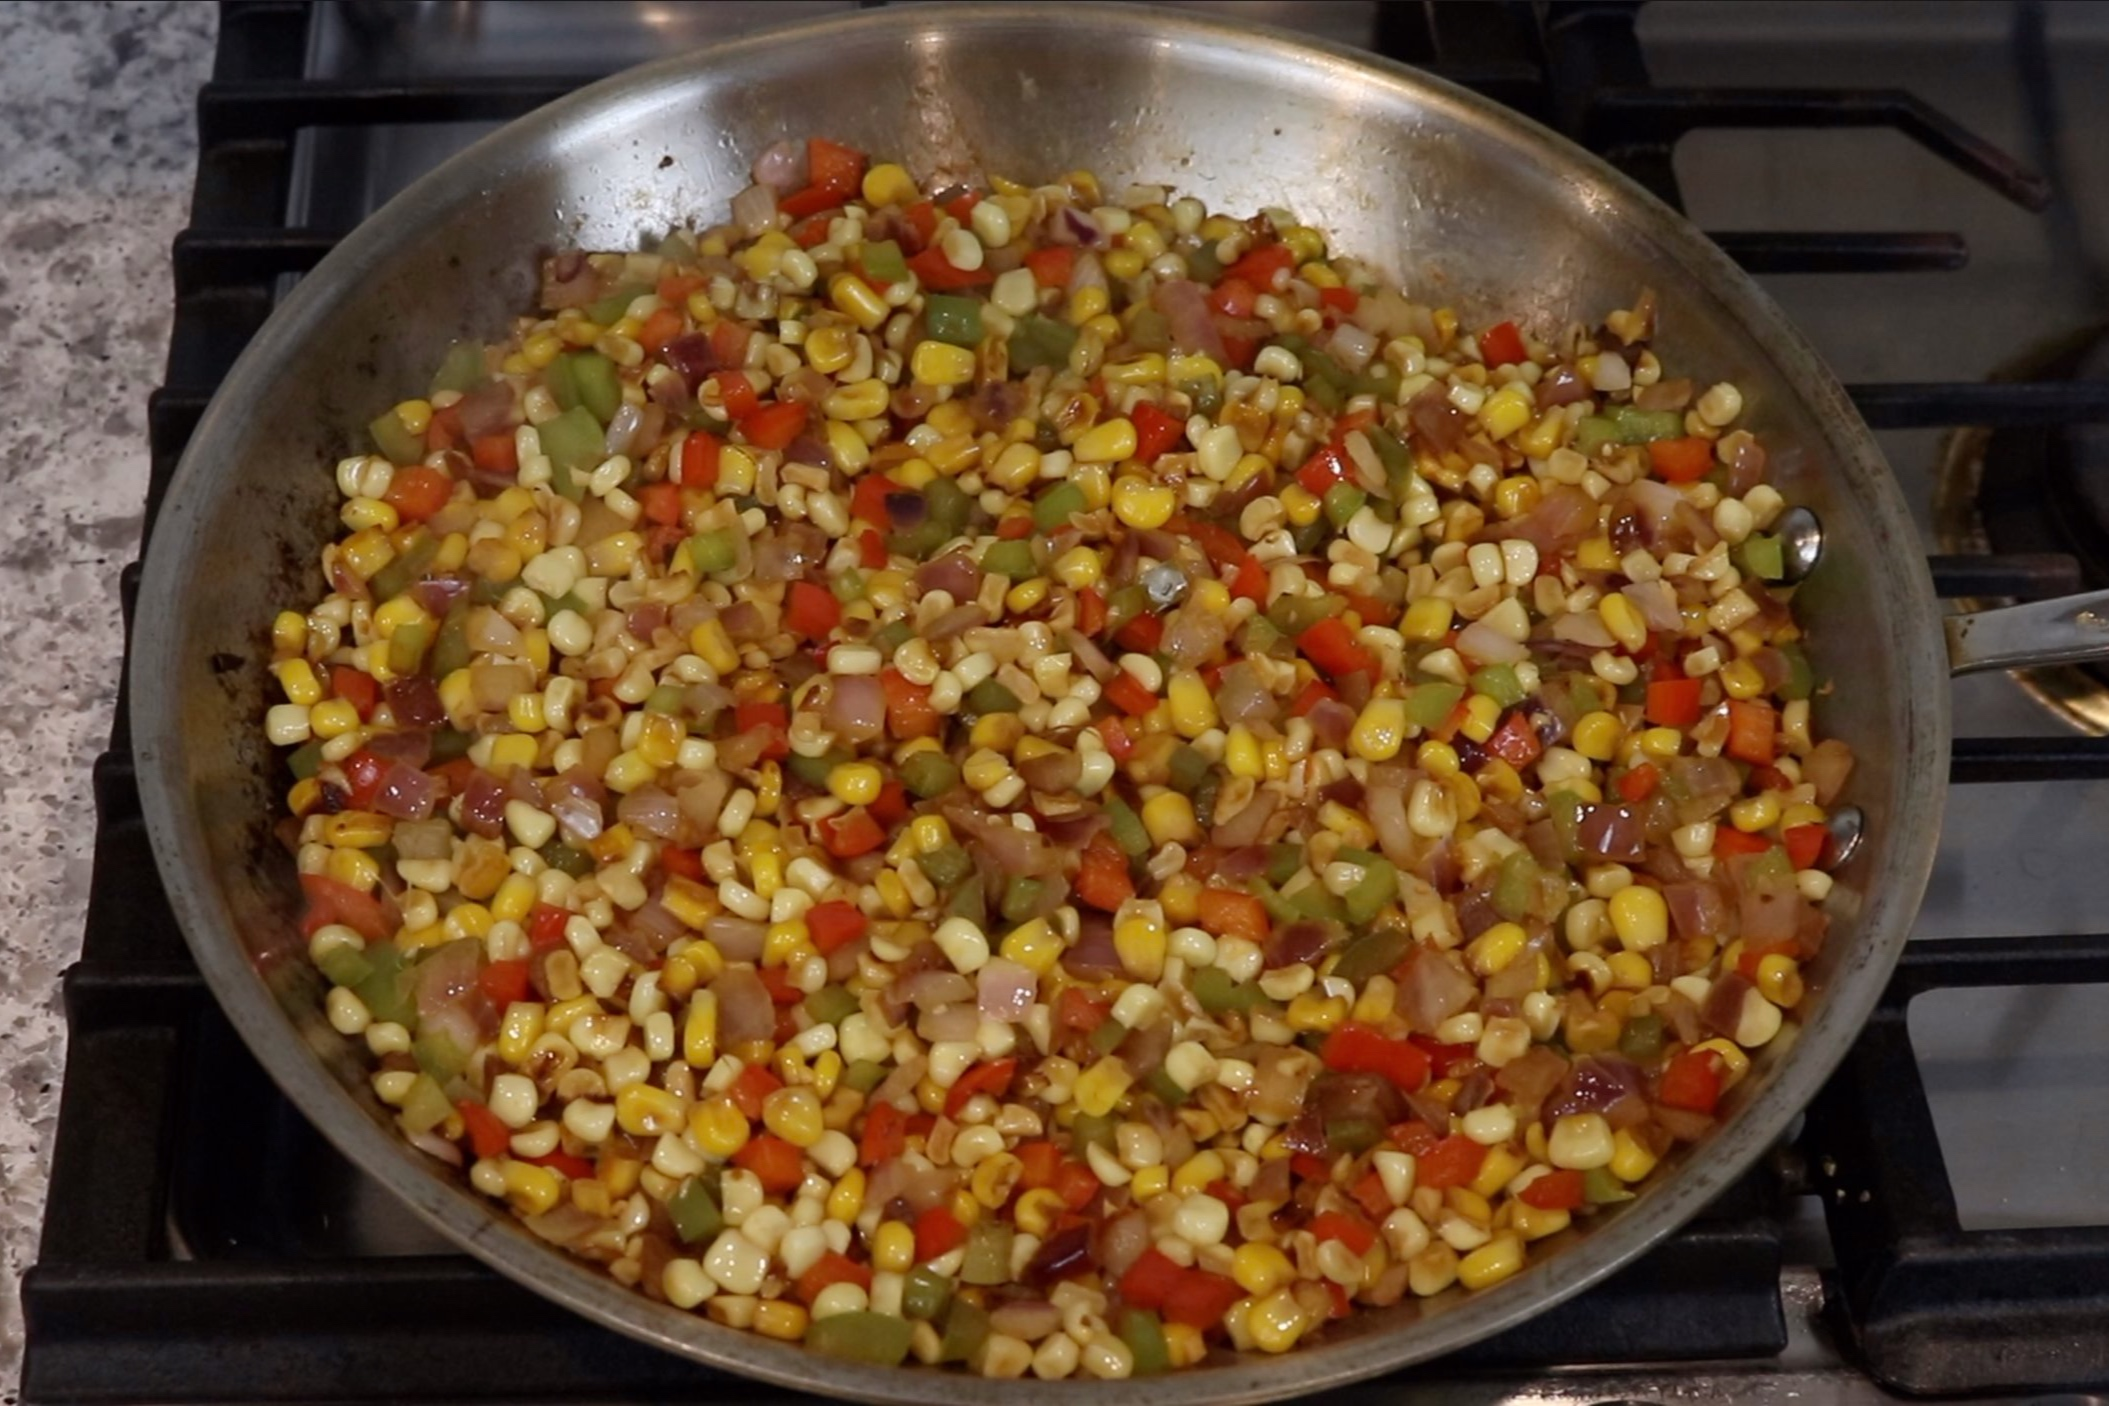 4. Cook for another 5-10 minutes until the corn starts to char. Remove from heat and cool to room temperature. -